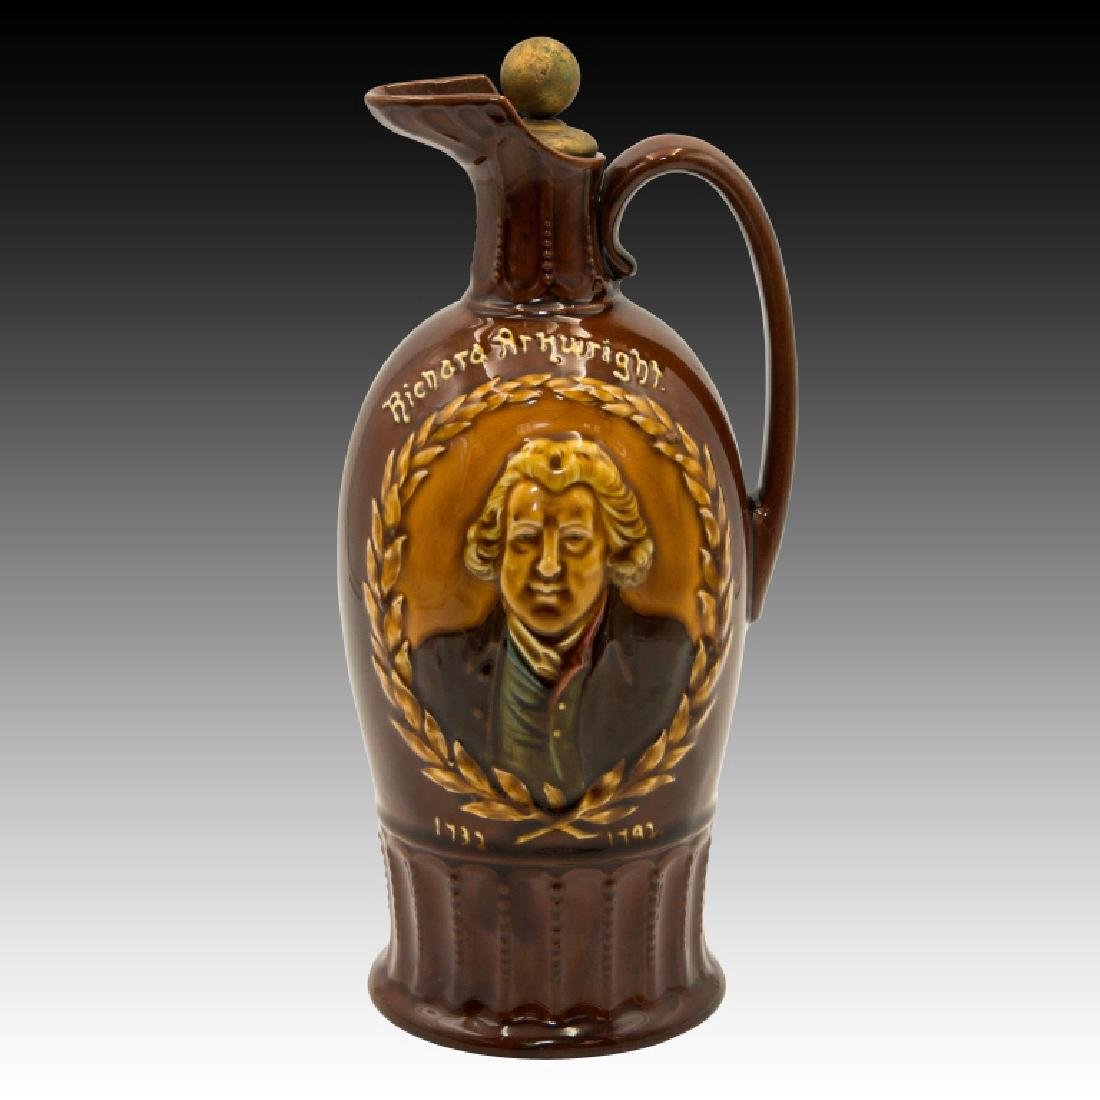 Doulton Kingsware Dewar's Richard Arkwright Flask